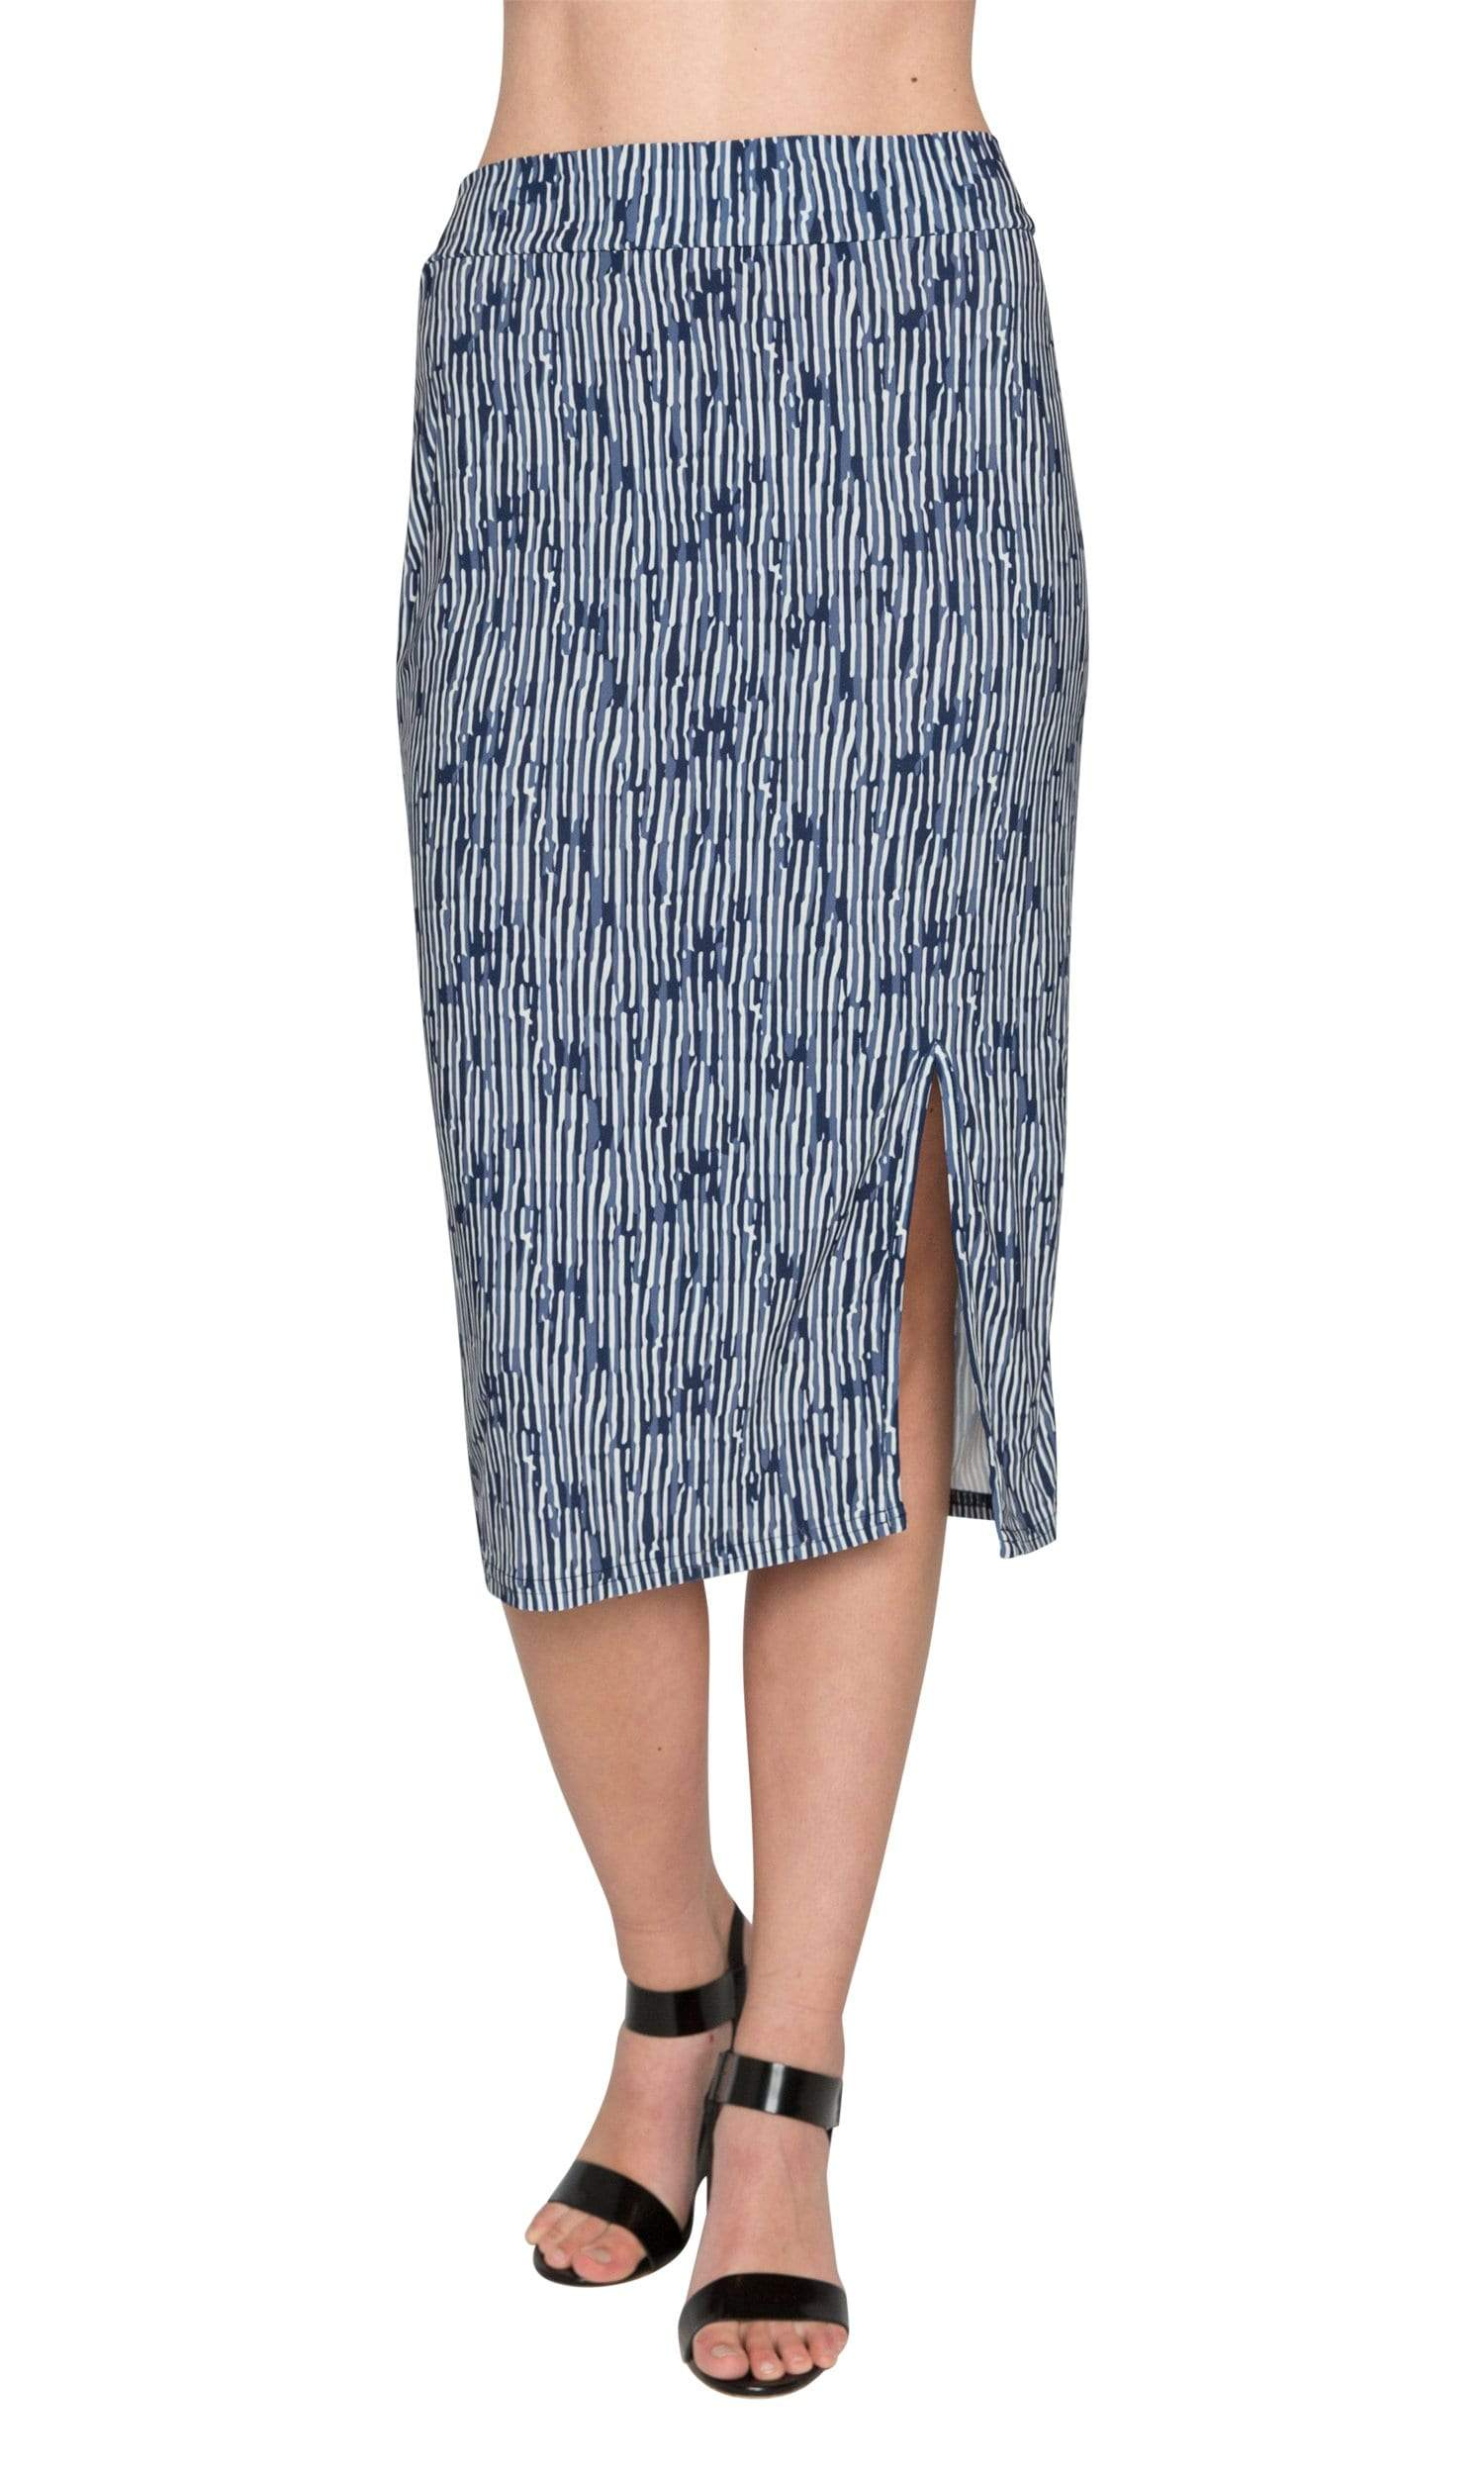 Viereck Ashcraft Pencil Skirt with Slit